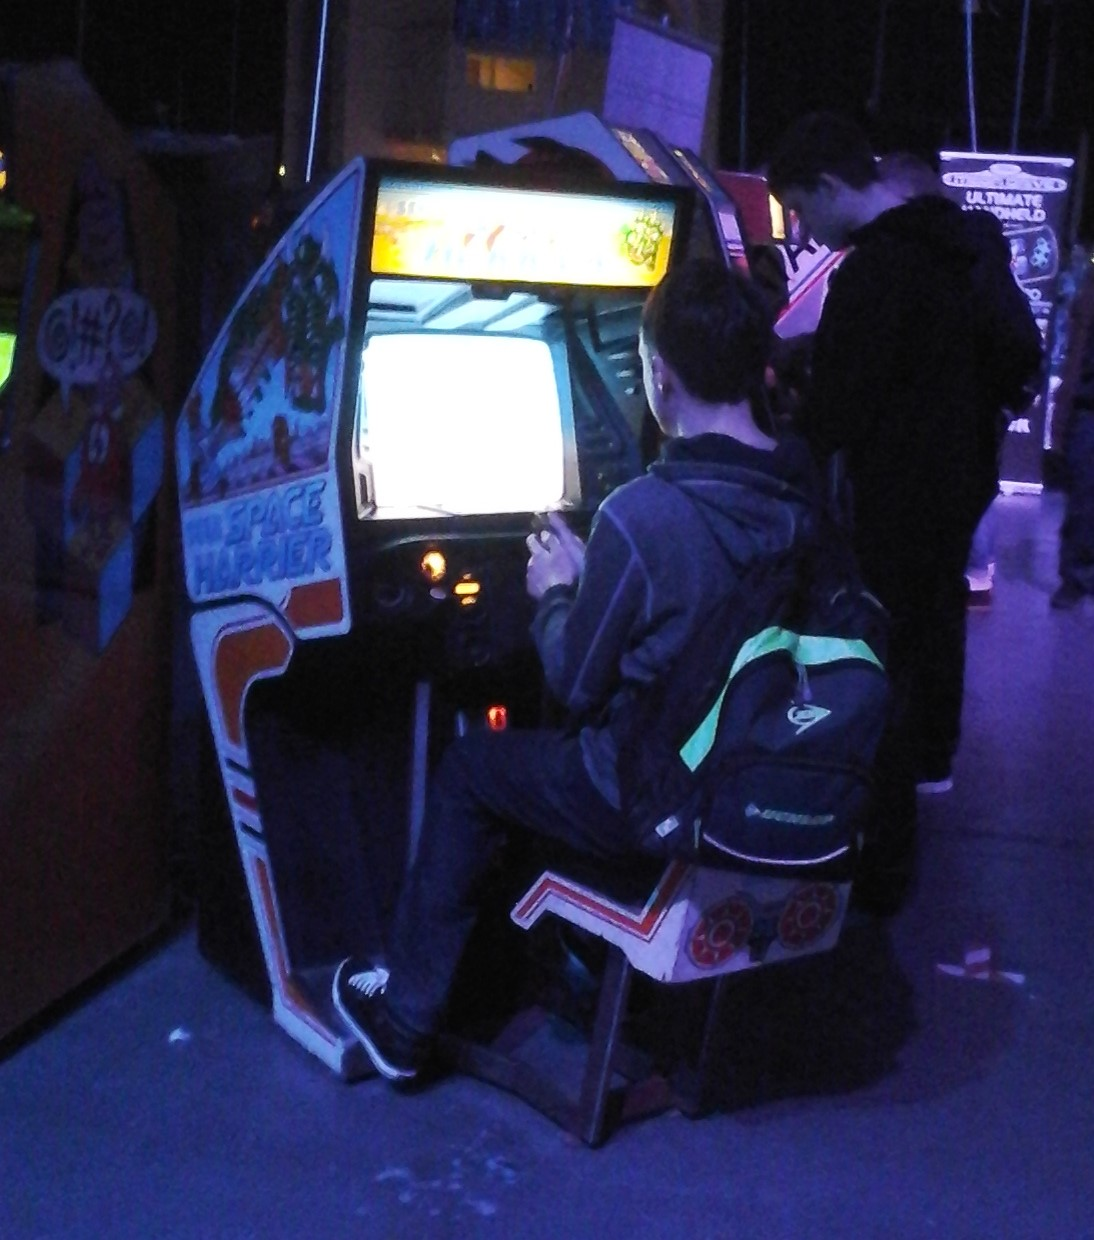 Play Blackpool, Retro Gaming